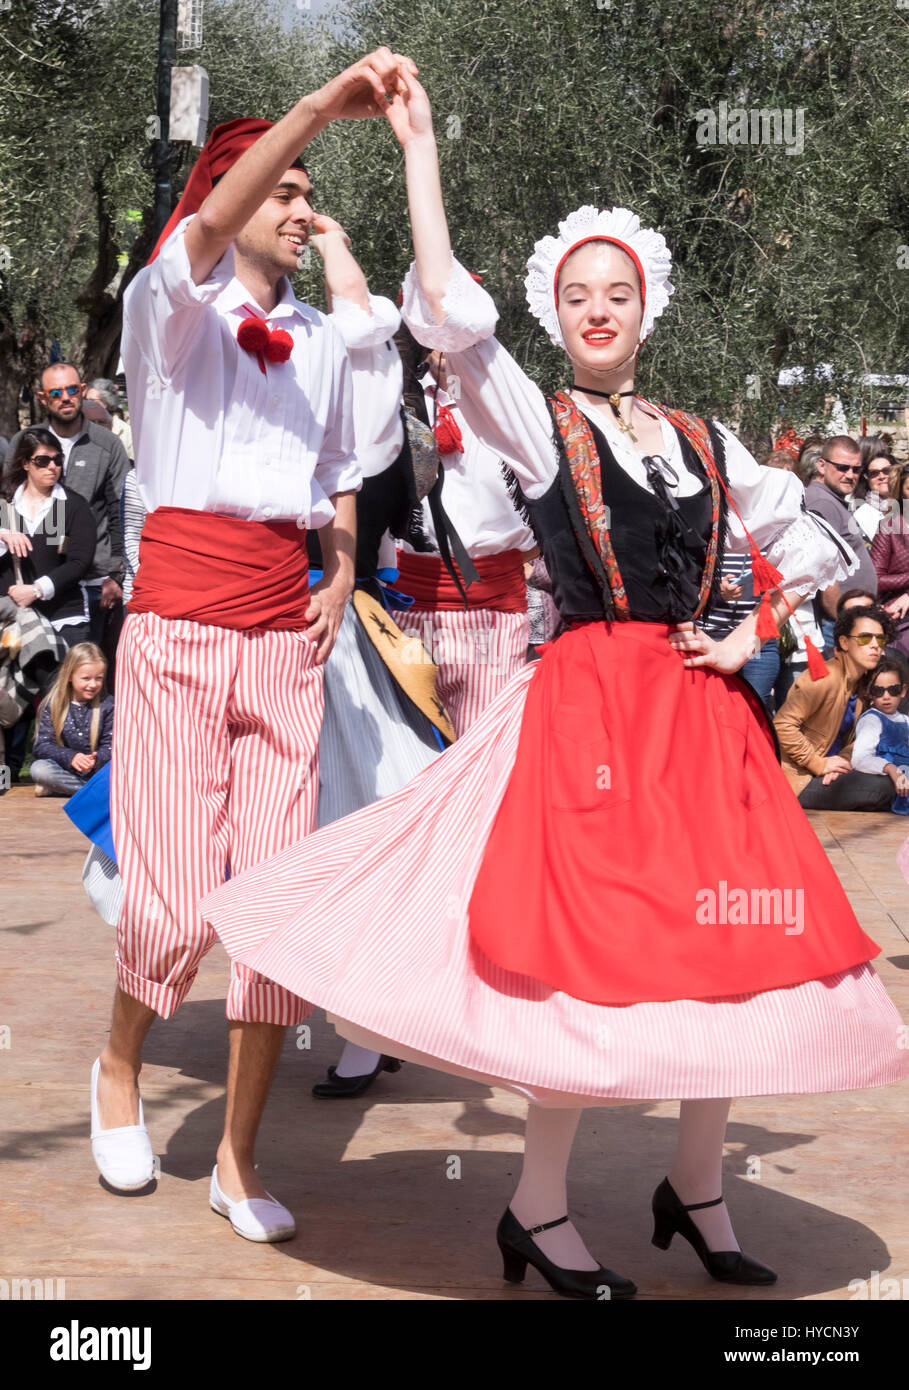 Folk dancers of Nice, France performing a traditional dance of the Alpes-Maritime region in authentic costumes of - Stock Image